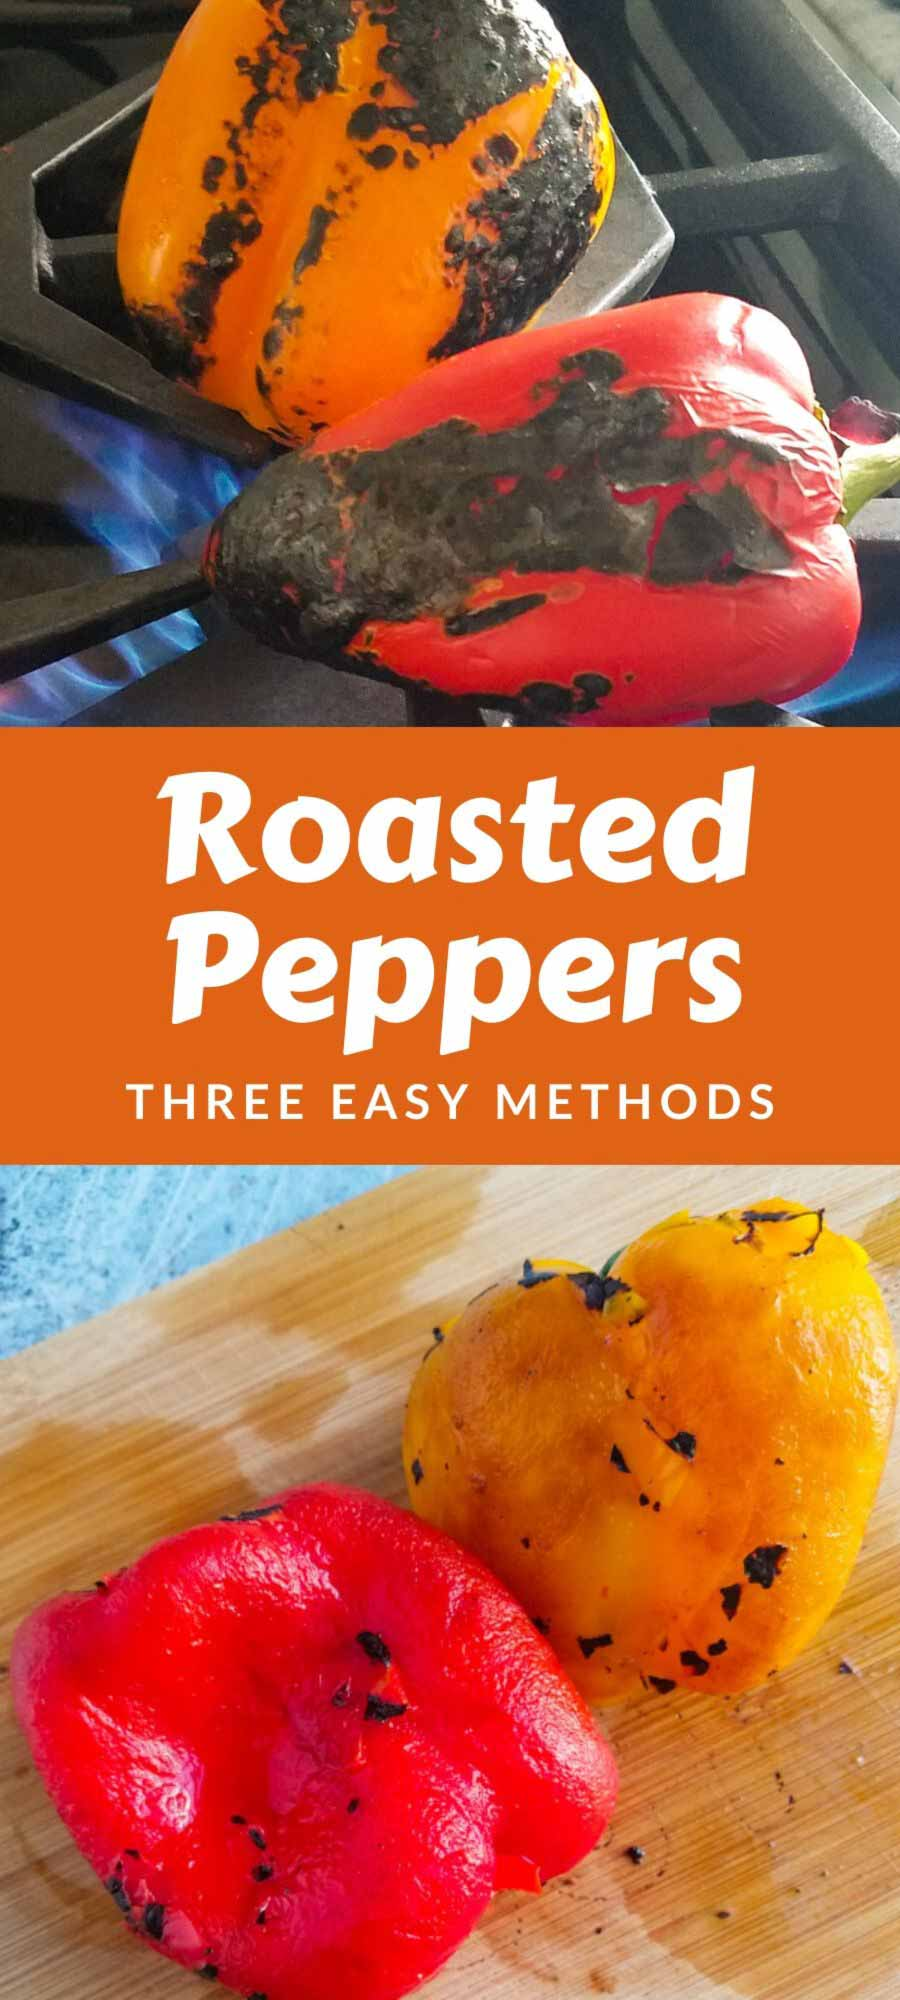 How to Roast Peppers- Three Easy Ways